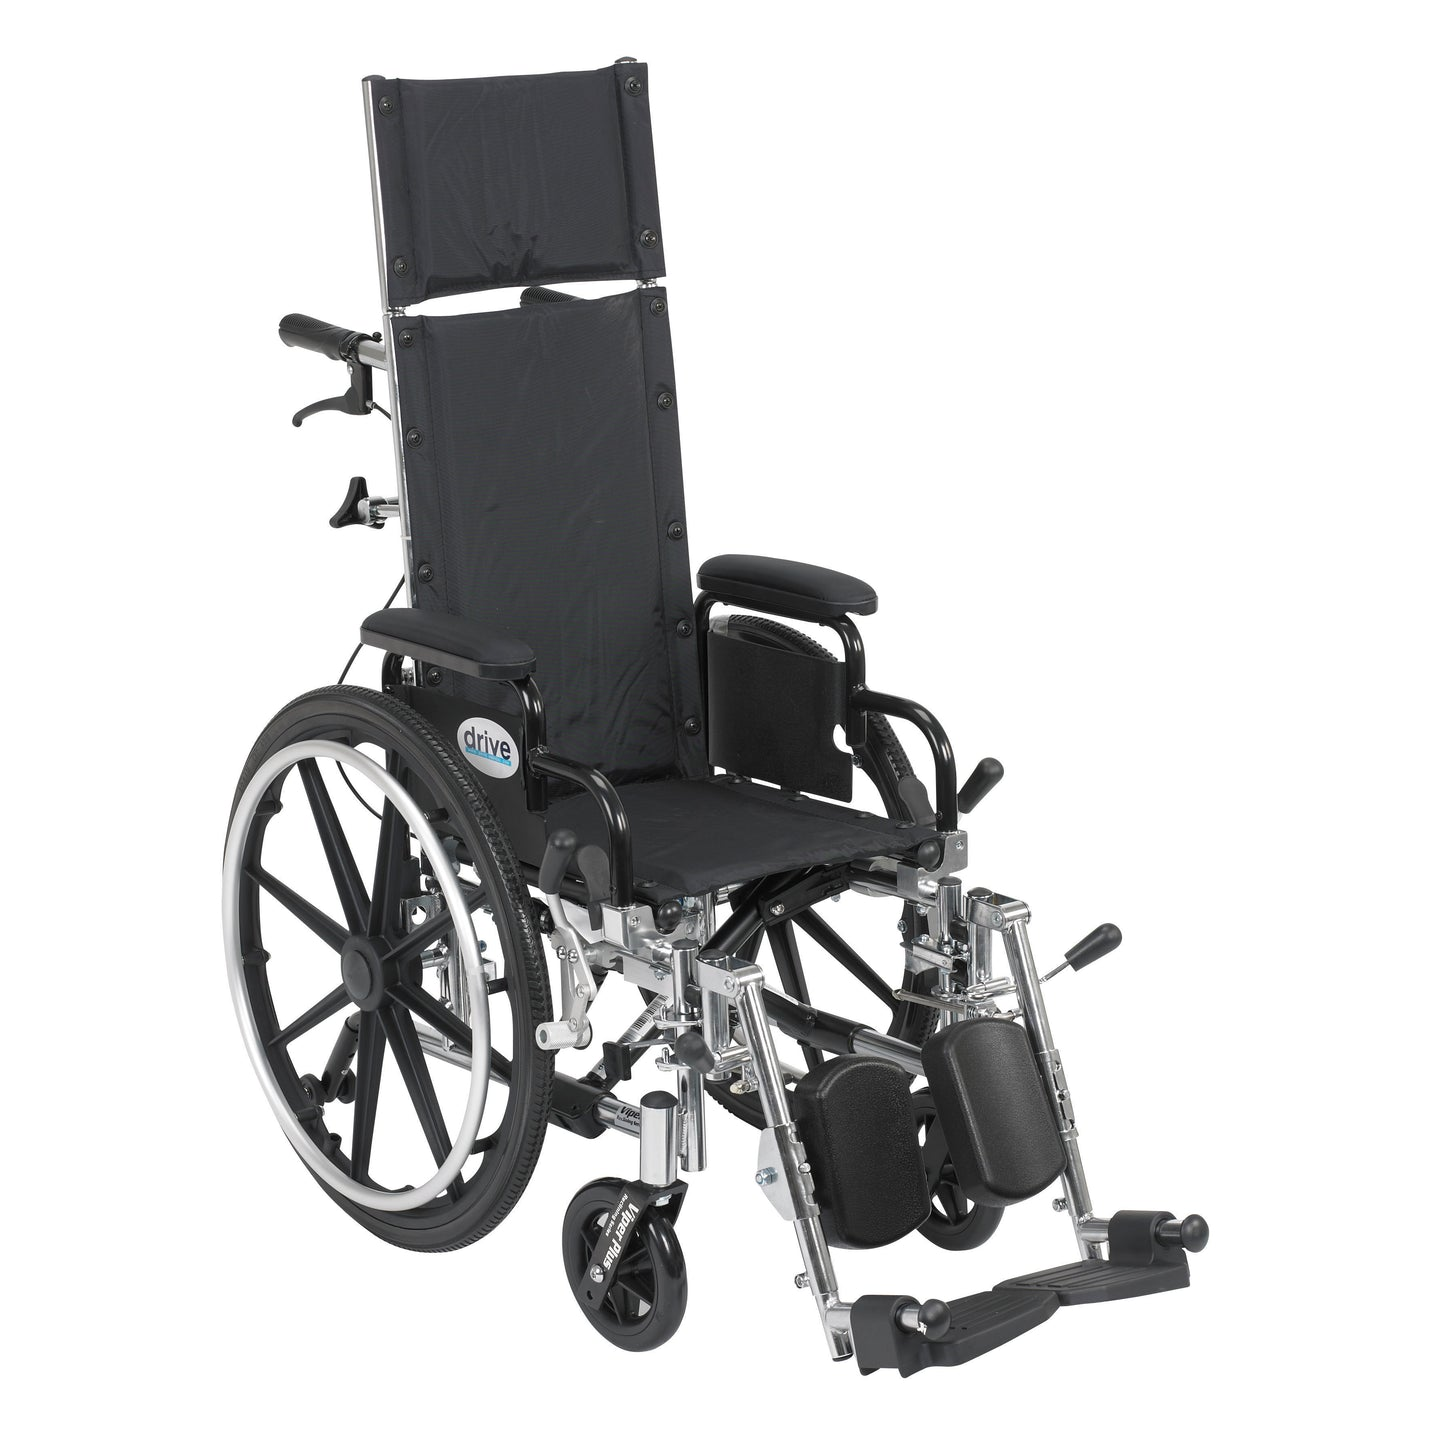 Drive Viper Plus Light Weight Reclining Wheelchair with Elevating Leg Rests and Flip Back Detachable Arms- 12